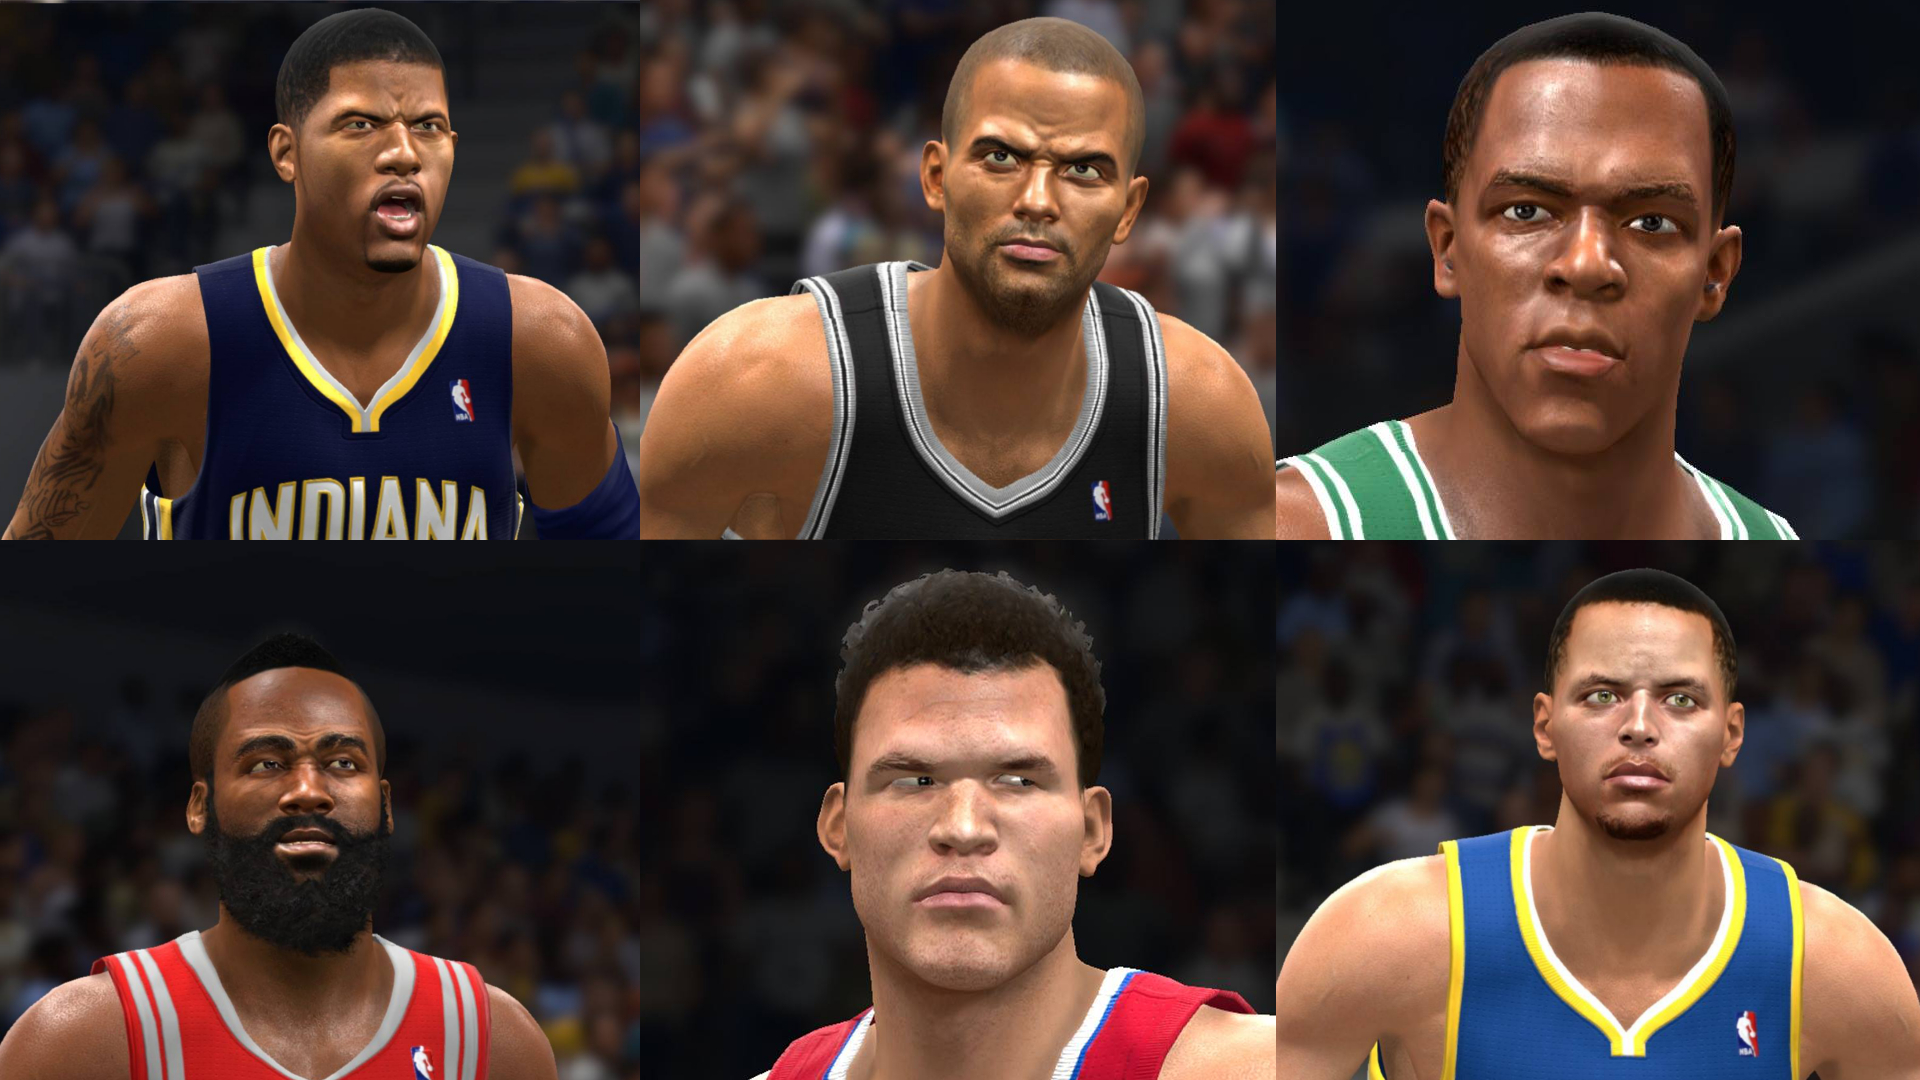 Animated Nba Wallpapers Quick Comparison Between Nba Live 14 And 15 Nlsc